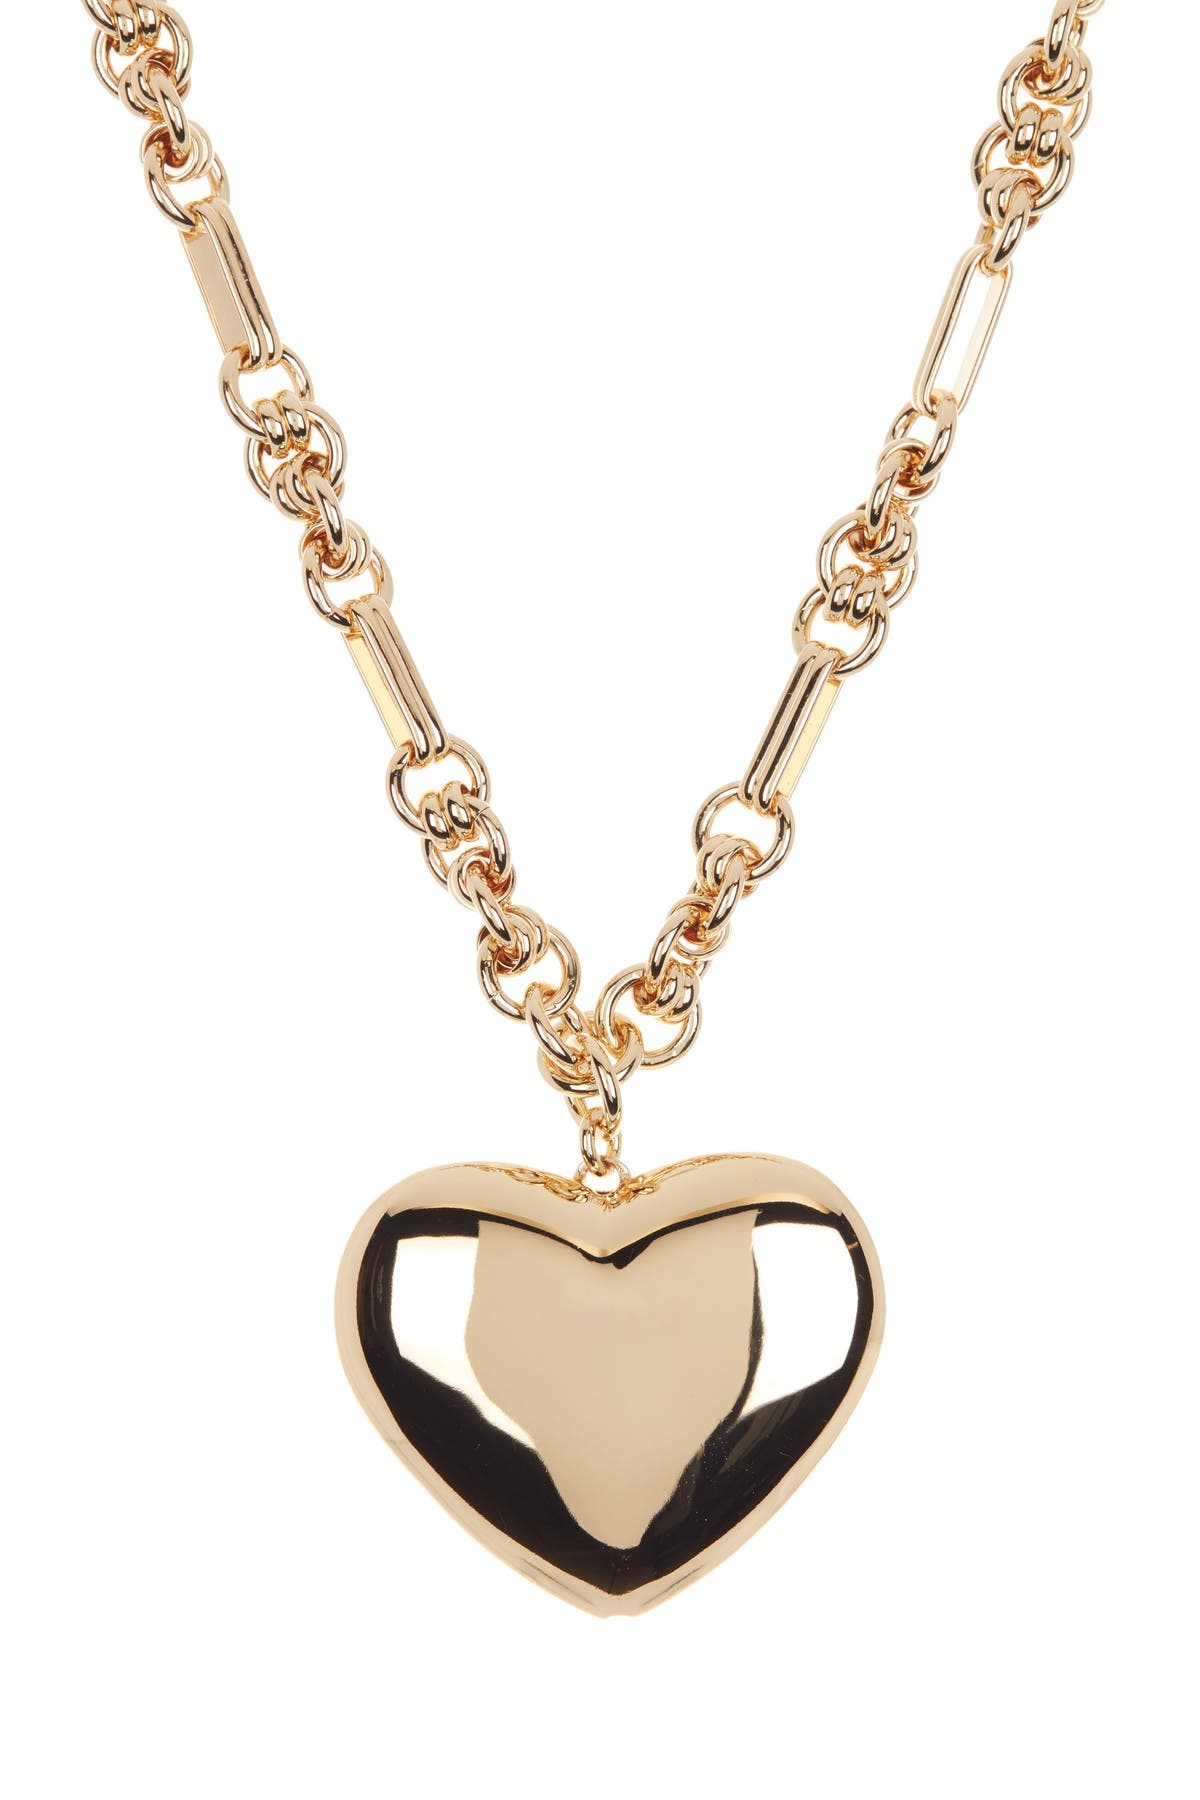 Image of Rebecca Minkoff Puffy Metal Heart Pendant Necklace